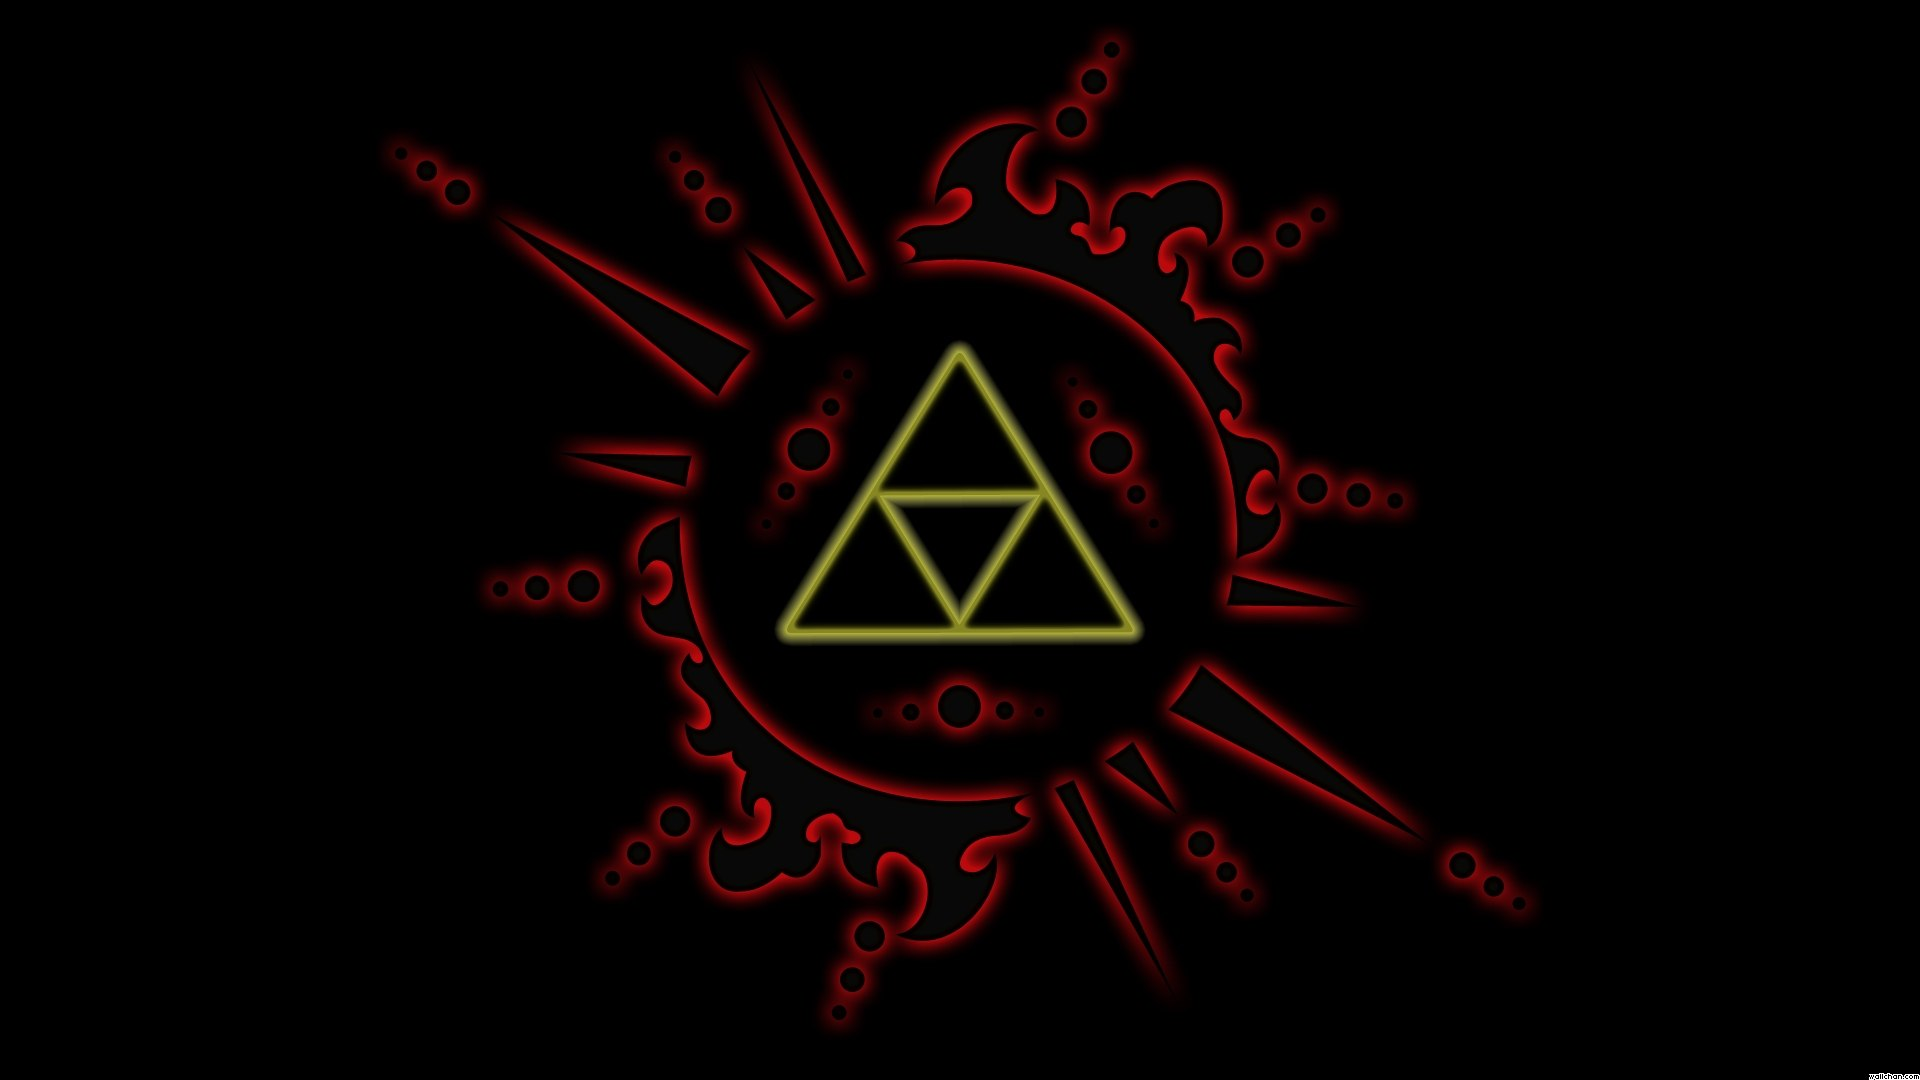 Zelda wallpaper 1920x1080 HQ WALLPAPER   28851 1920x1080